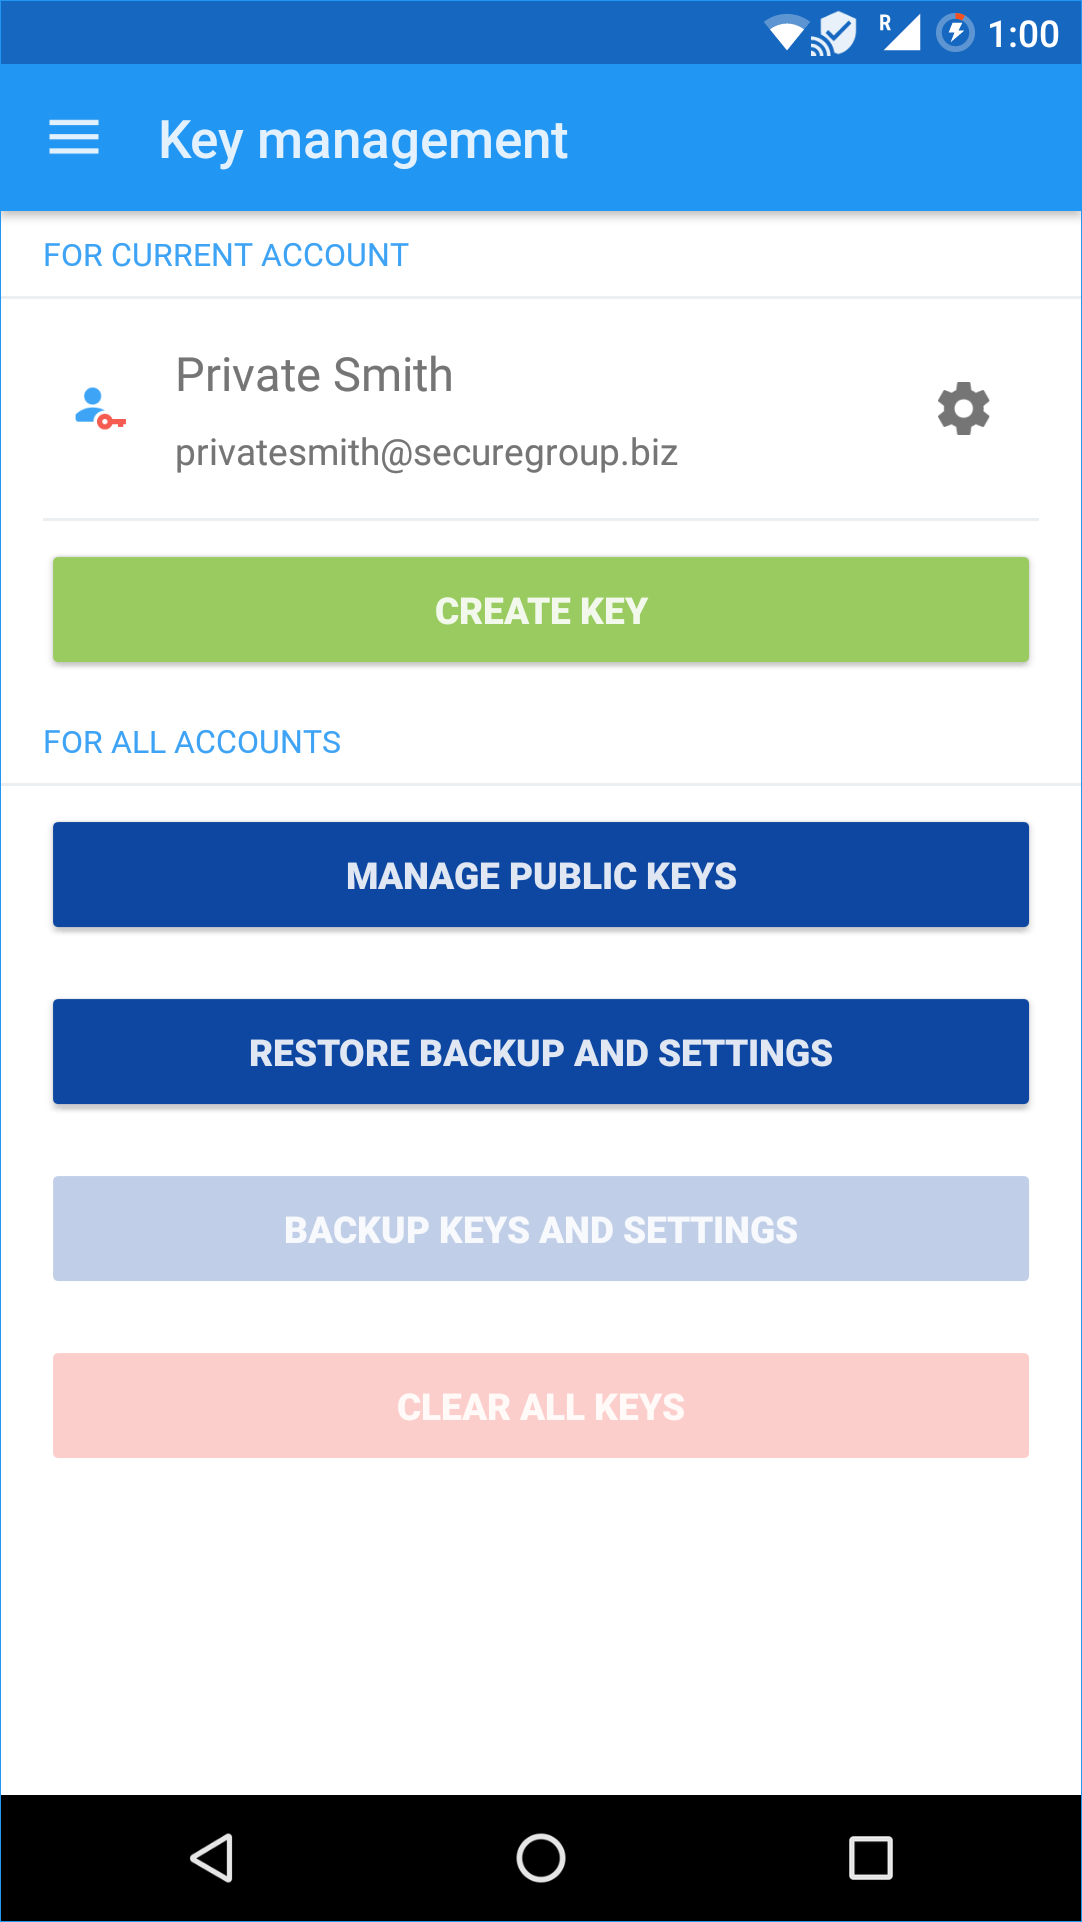 Users can now restore their private key(s) and the app's settings after a device wipe or change.